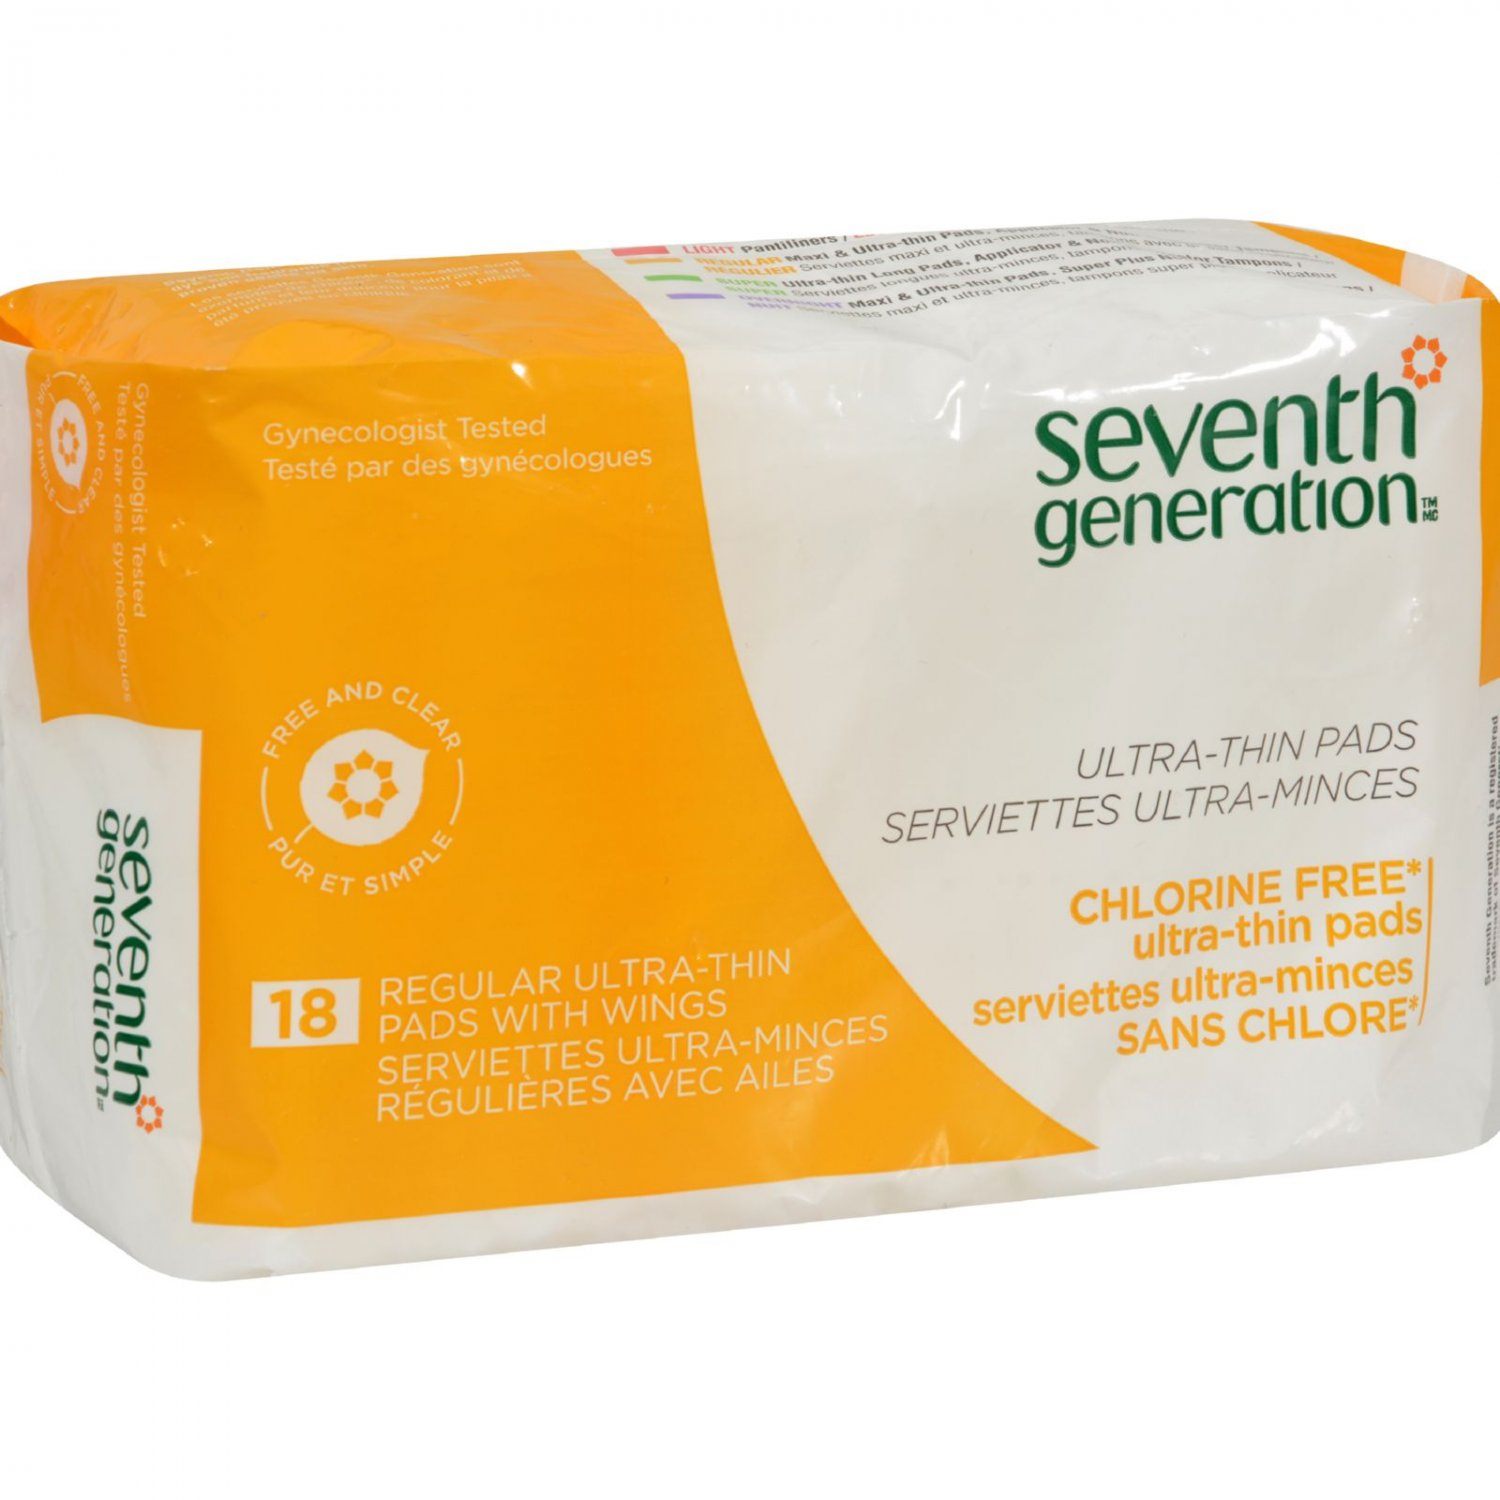 Seventh Generation Ultra Thin Maxi Pads - Chlorine Free - Regular with Wings - 18 Pads